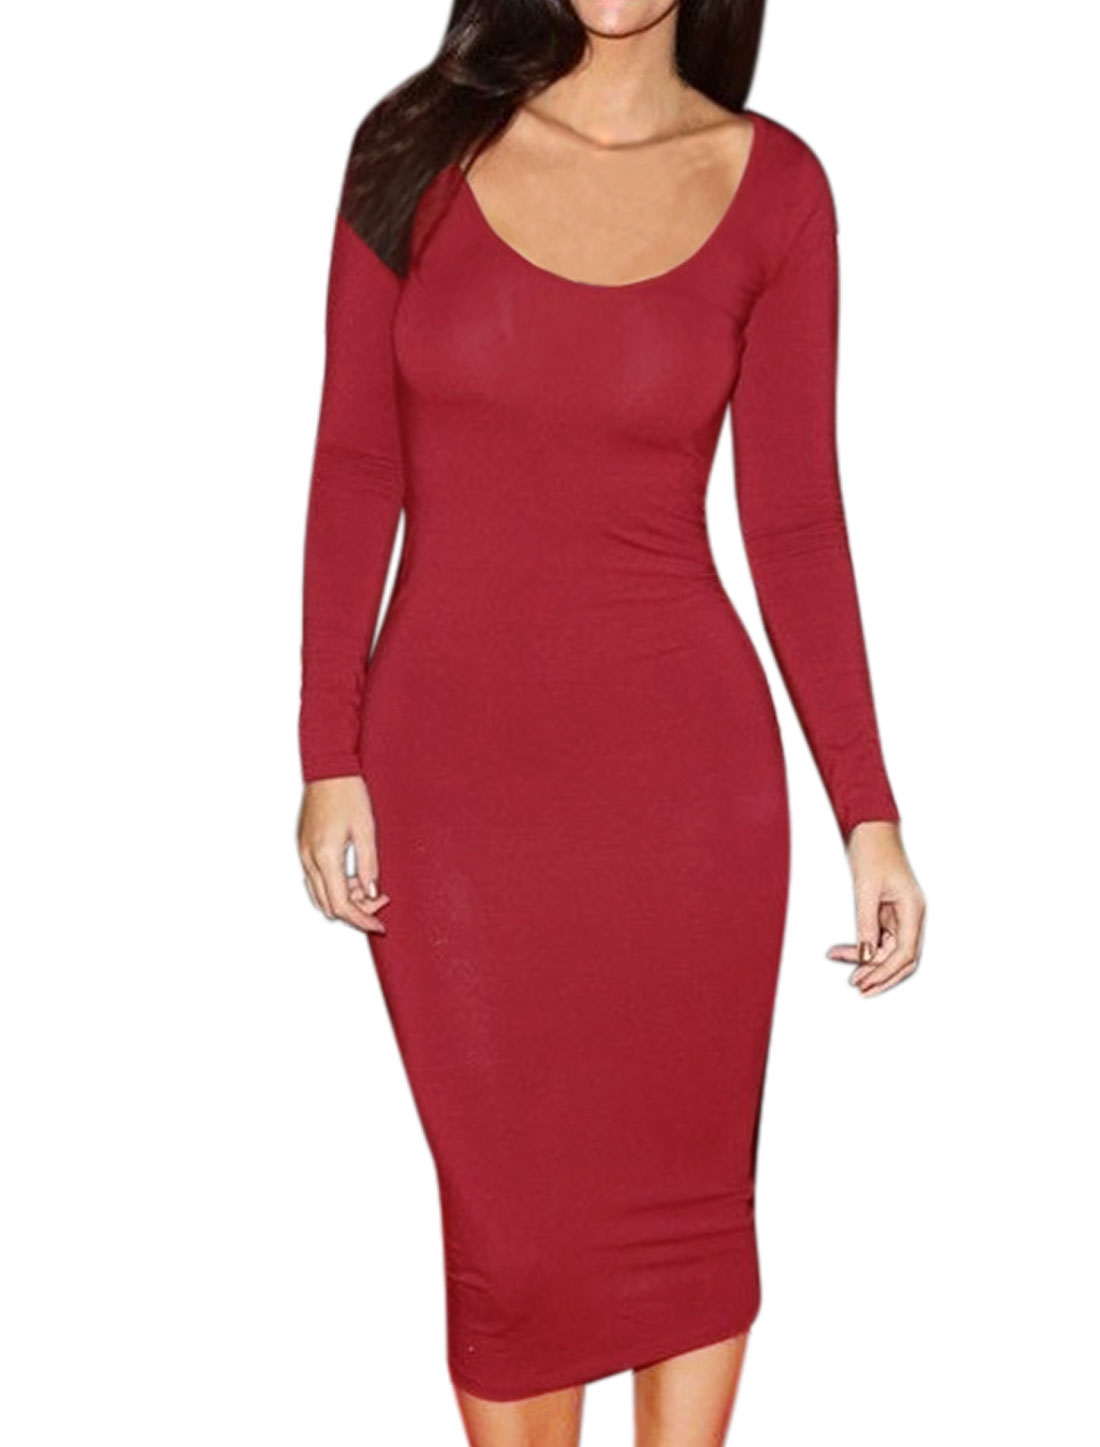 Ladies Scoop Neck Long Sleeves Stretchy Unlined Midi Dress Red L